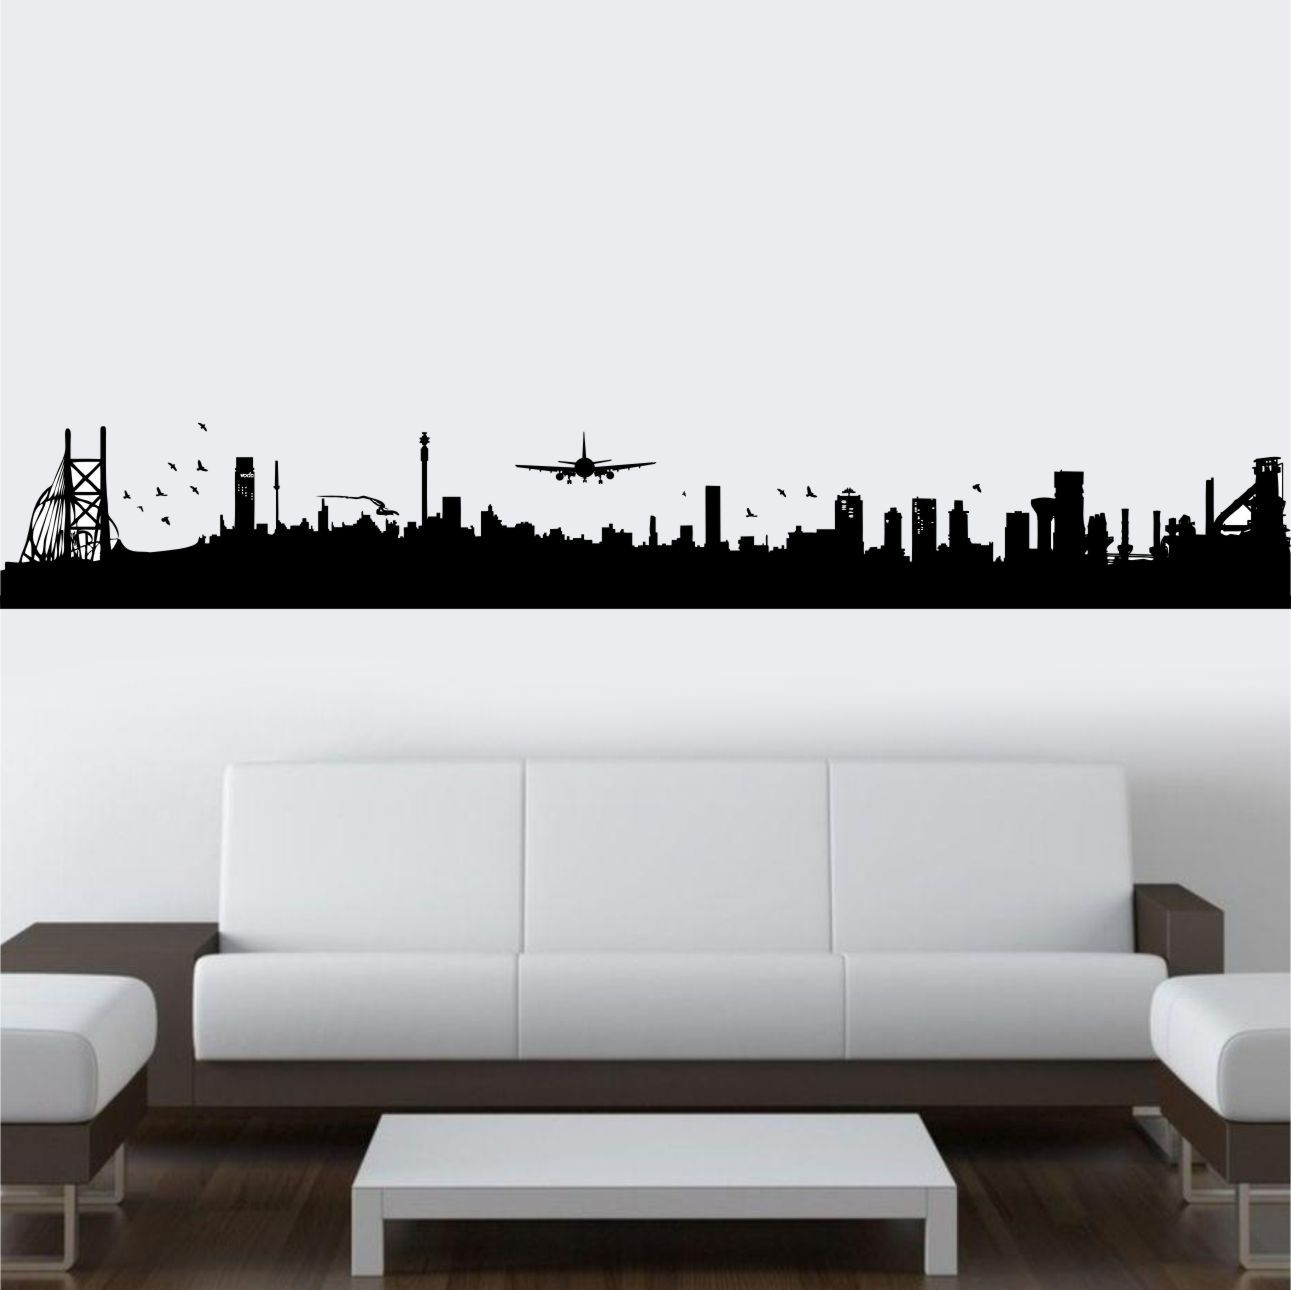 Wall Stickers Cape Town - Custom vinyl stickers johannesburg